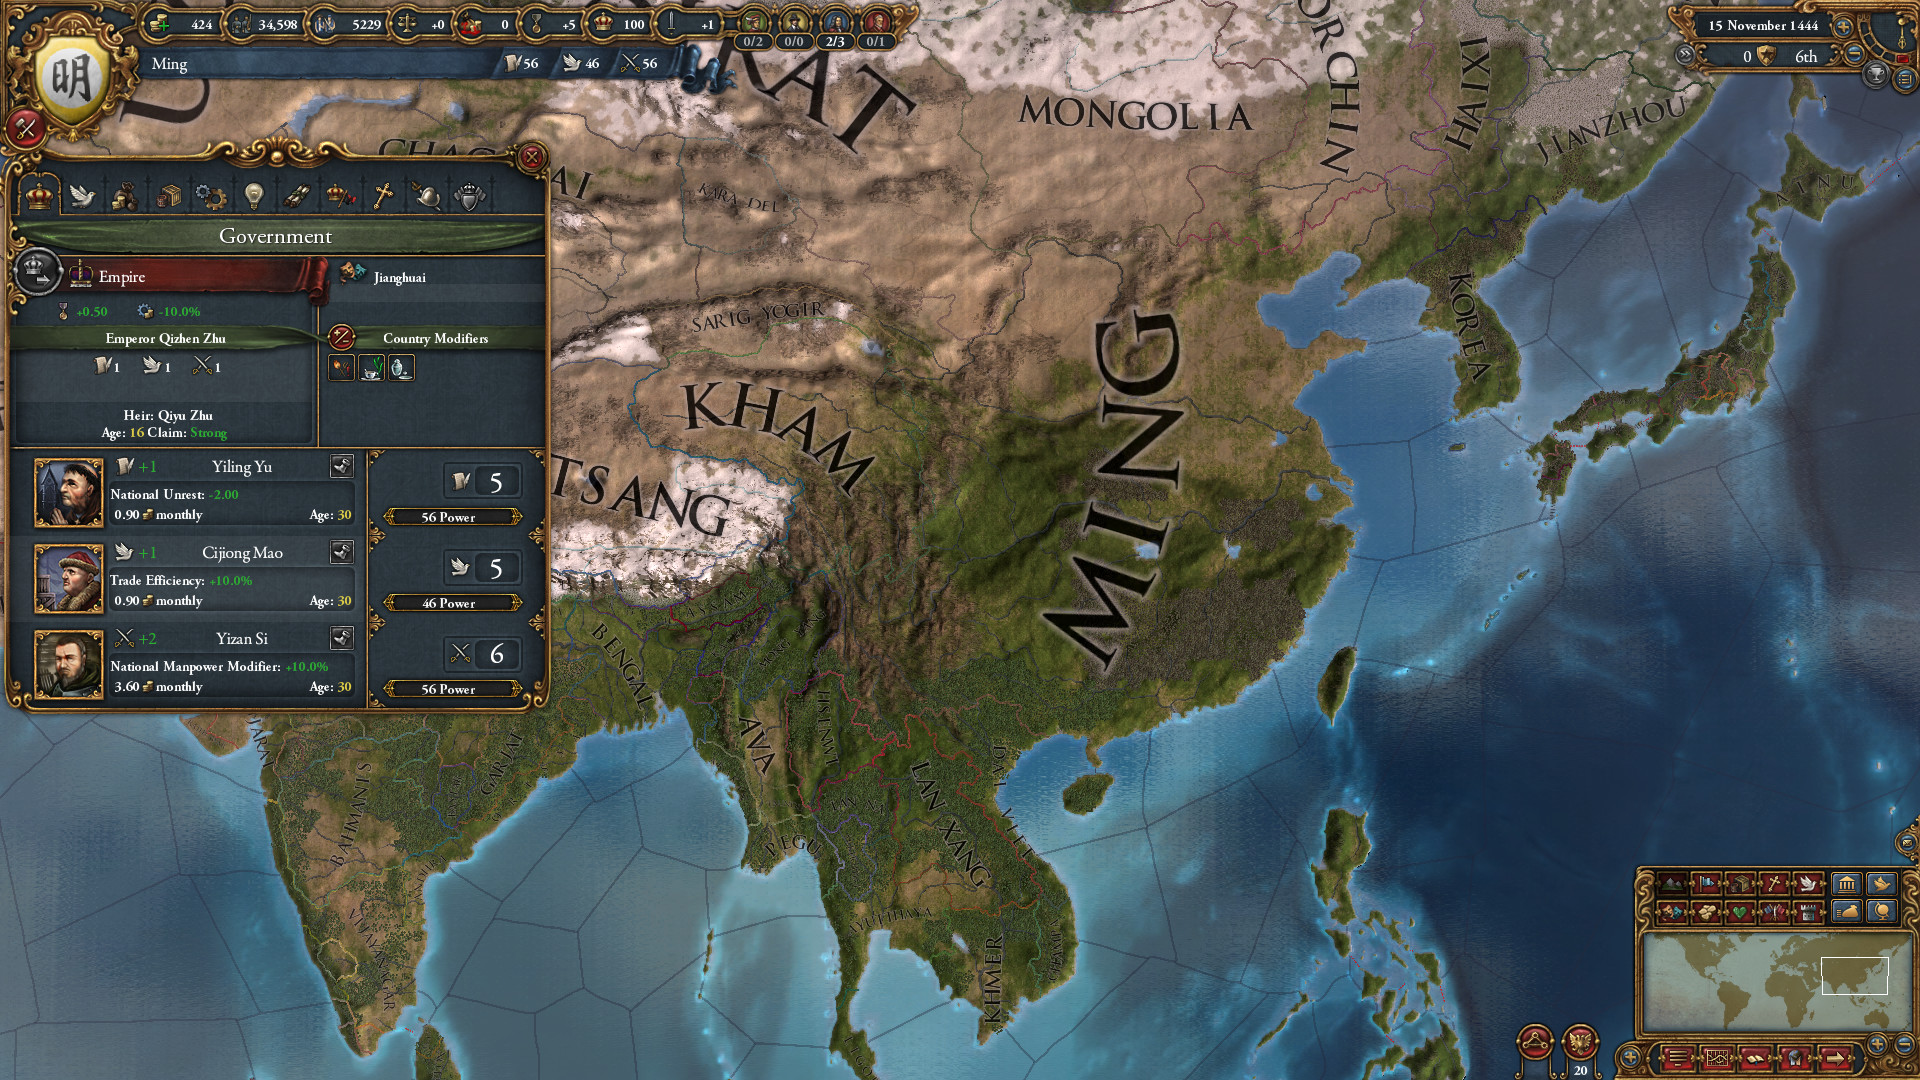 Europa Universalis IV System Requirements - Can I Run It